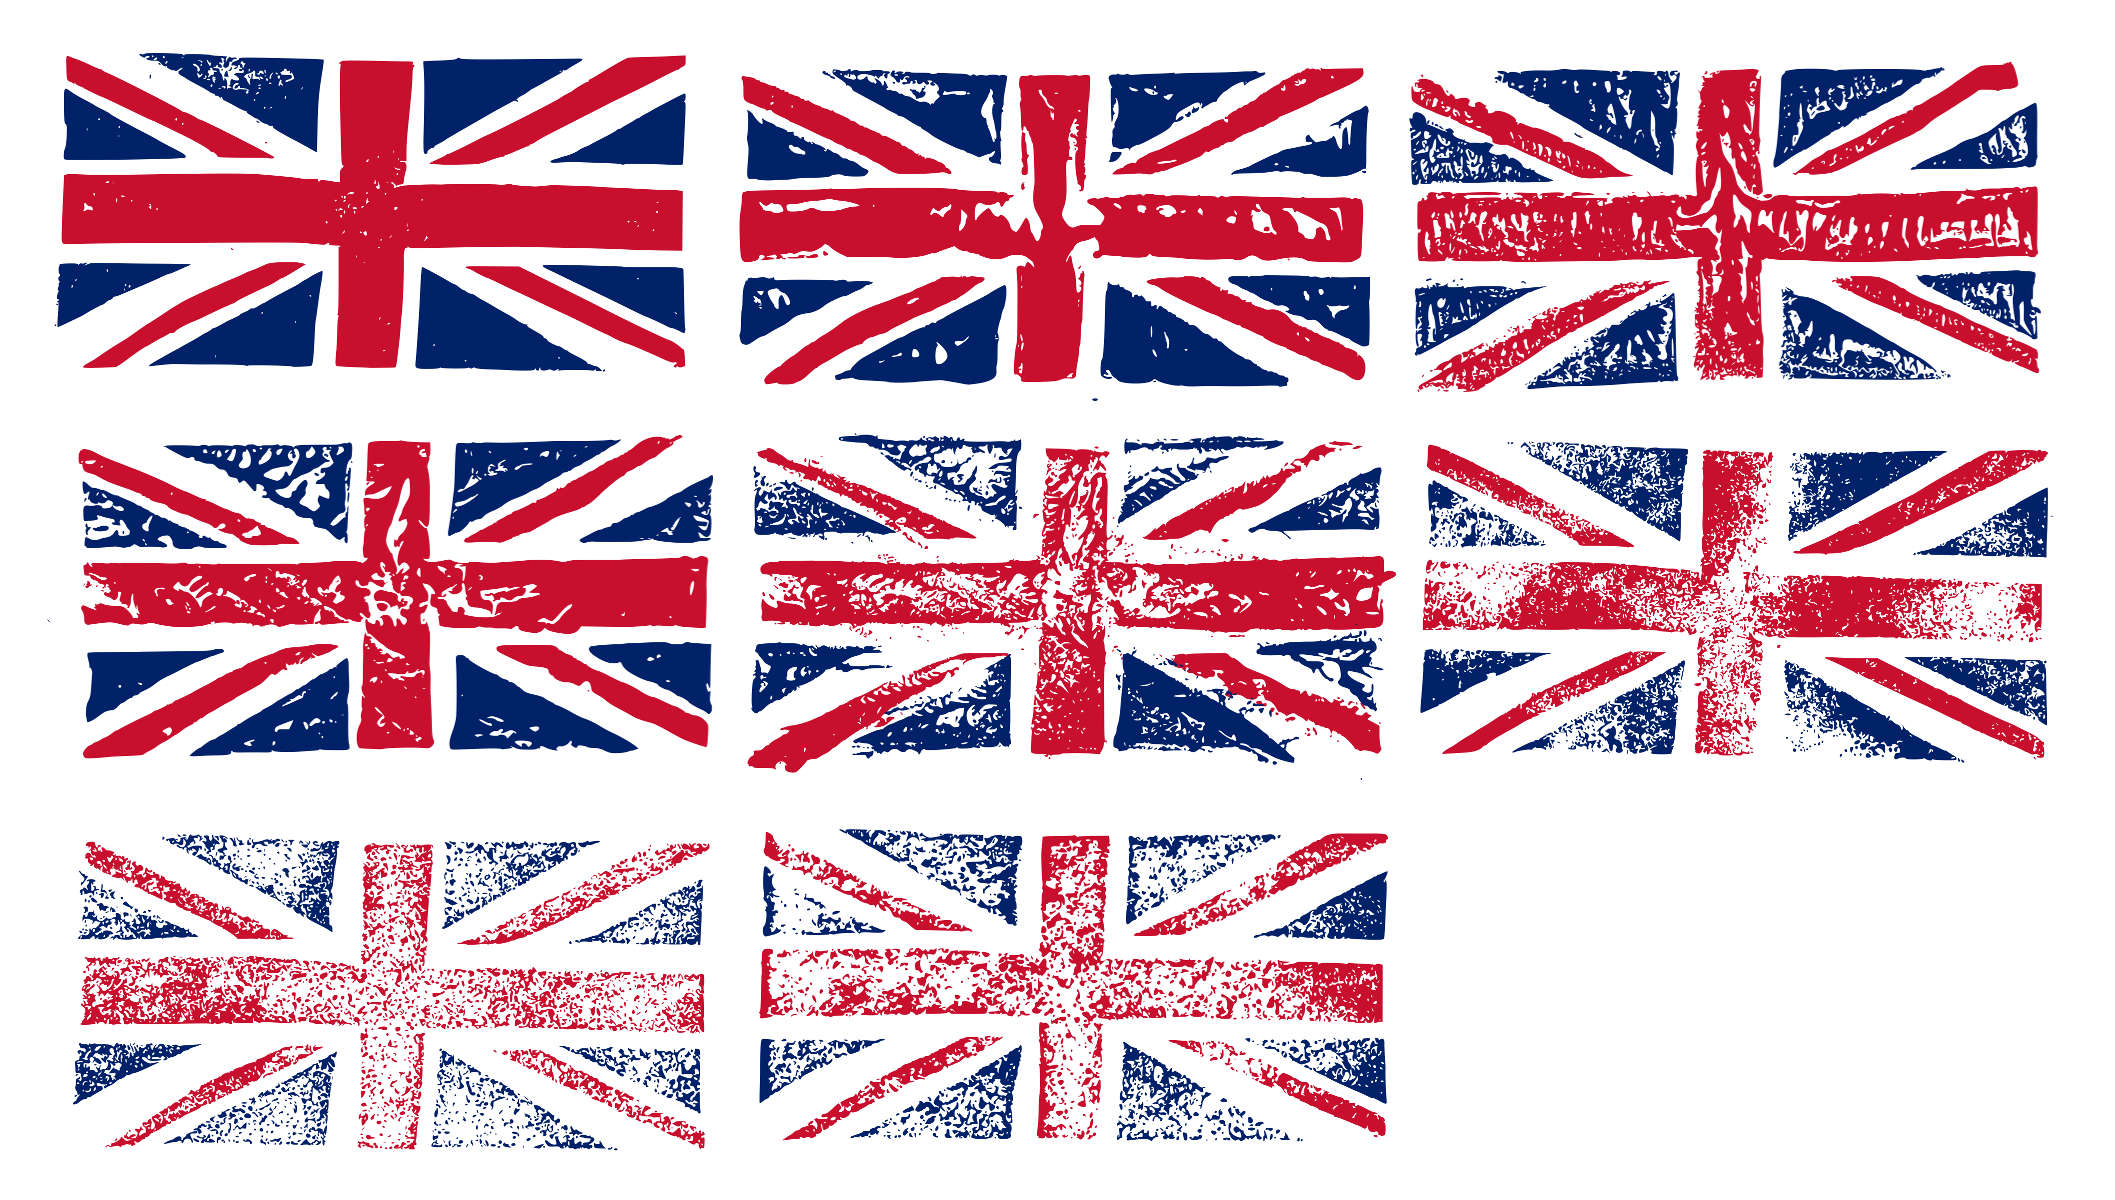 grunge-britain-uk-flag-cover.jpg